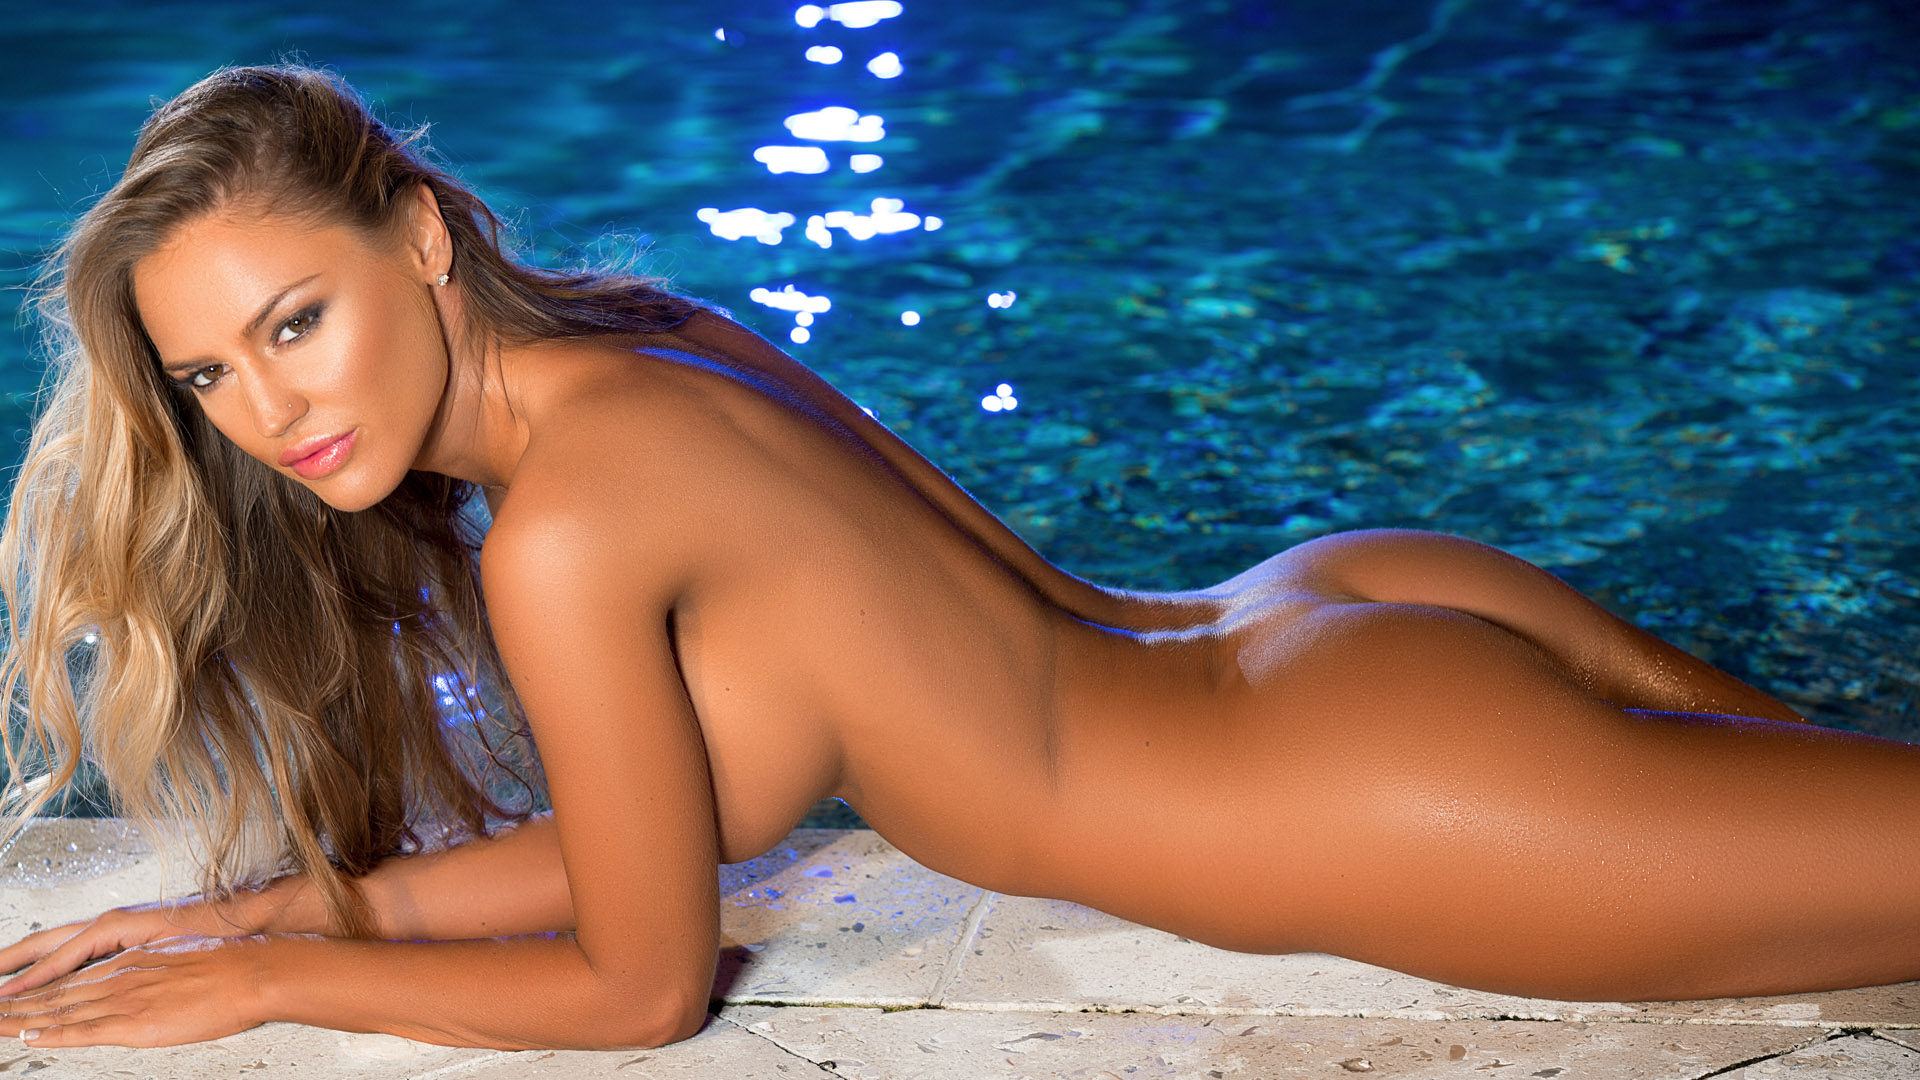 Babe hq scan sexy